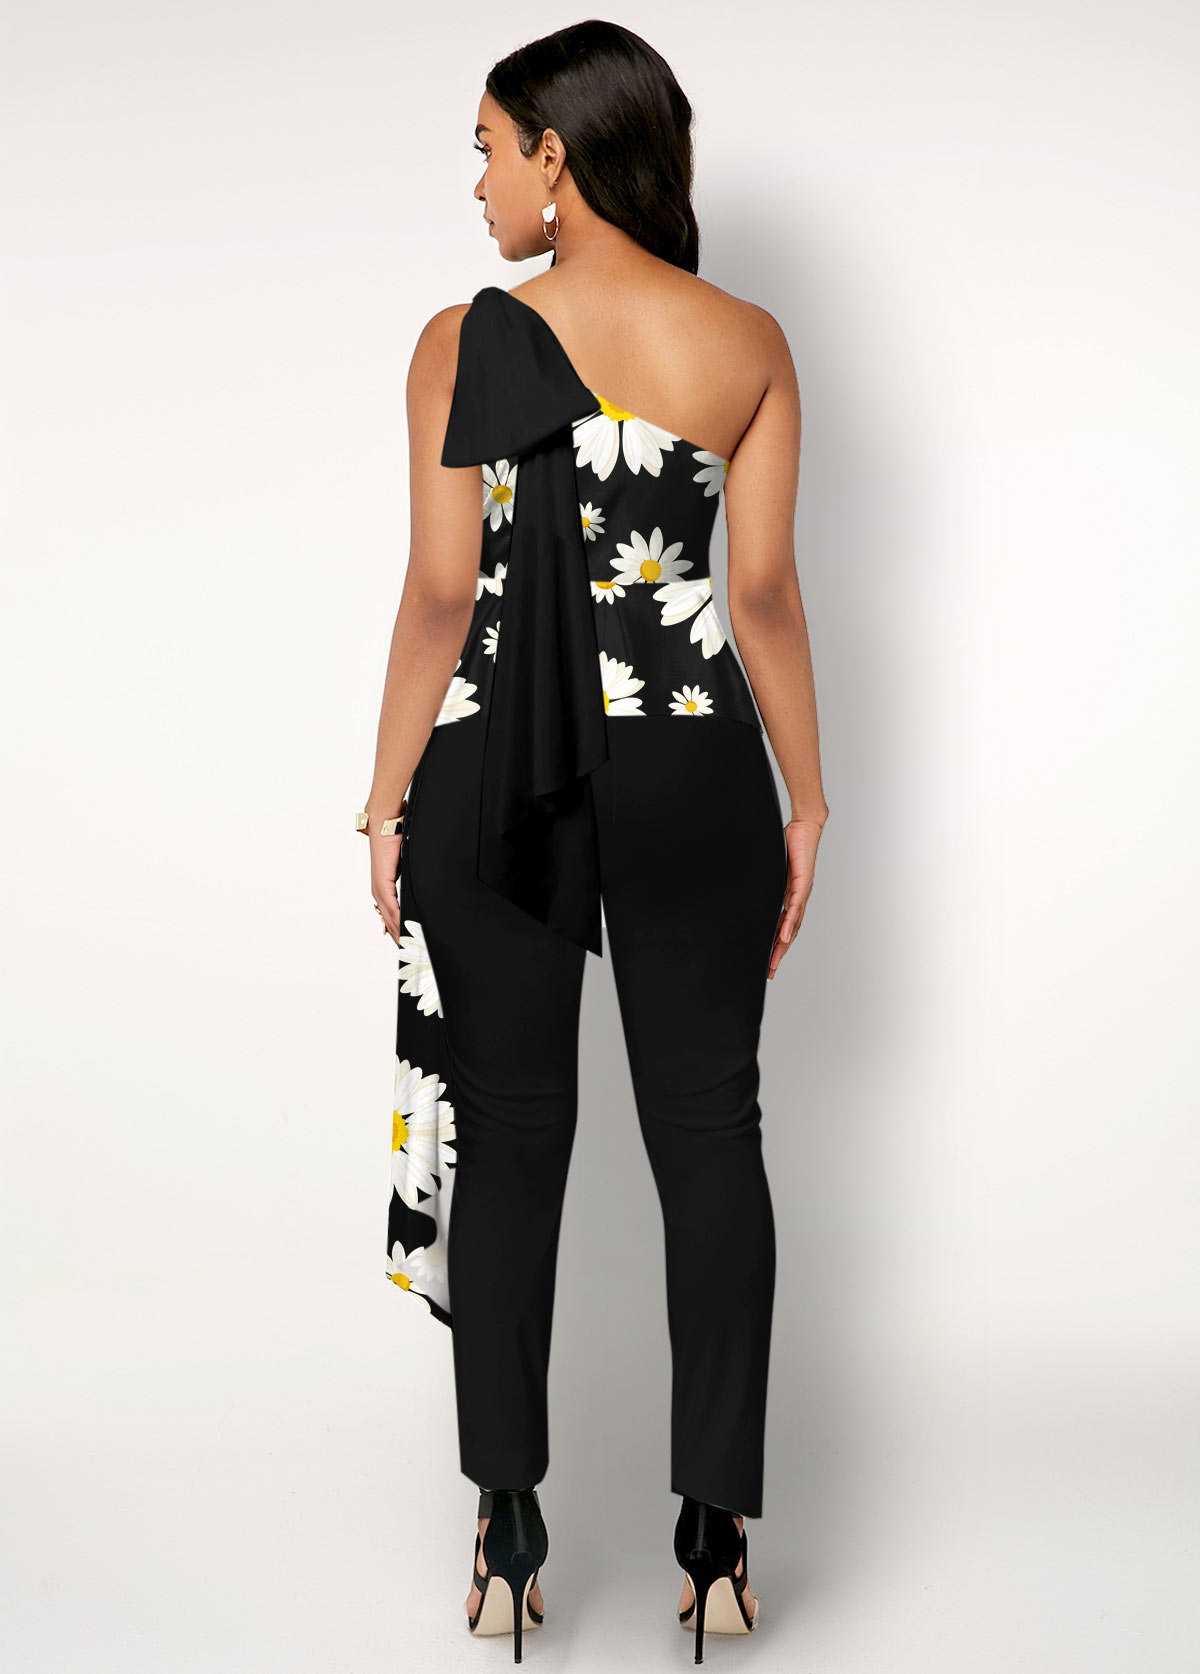 Daisy Print One Shoulder Black Overlay Jumpsuit